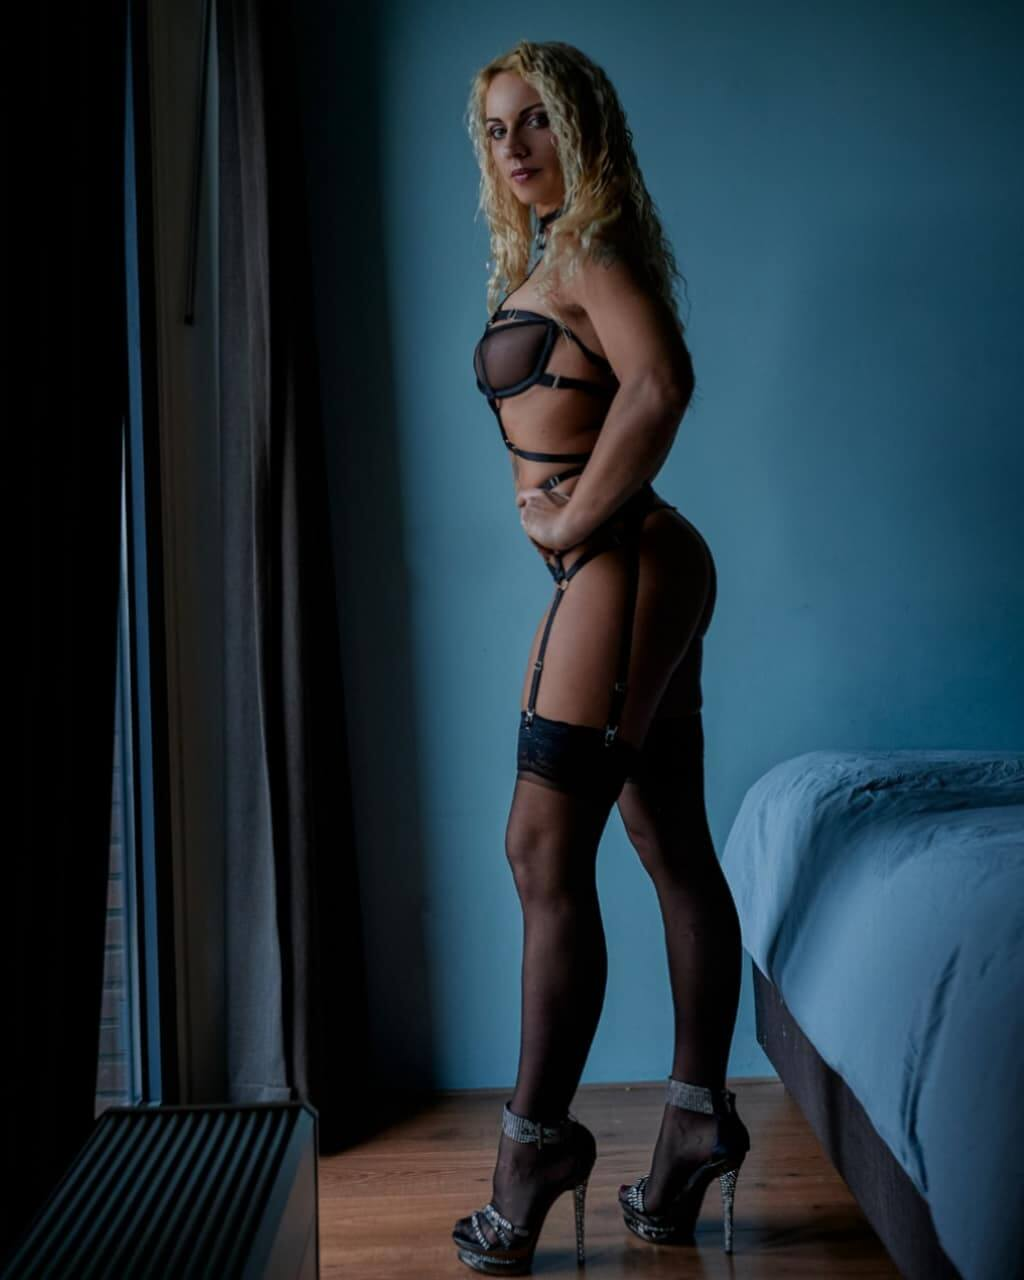 Beautiful blonde Dutch model Willeke Bartels standing in her room showing her sexy body and long hot legs wearing black lingerie with black nylon stockings and high heels in a sensual photo session